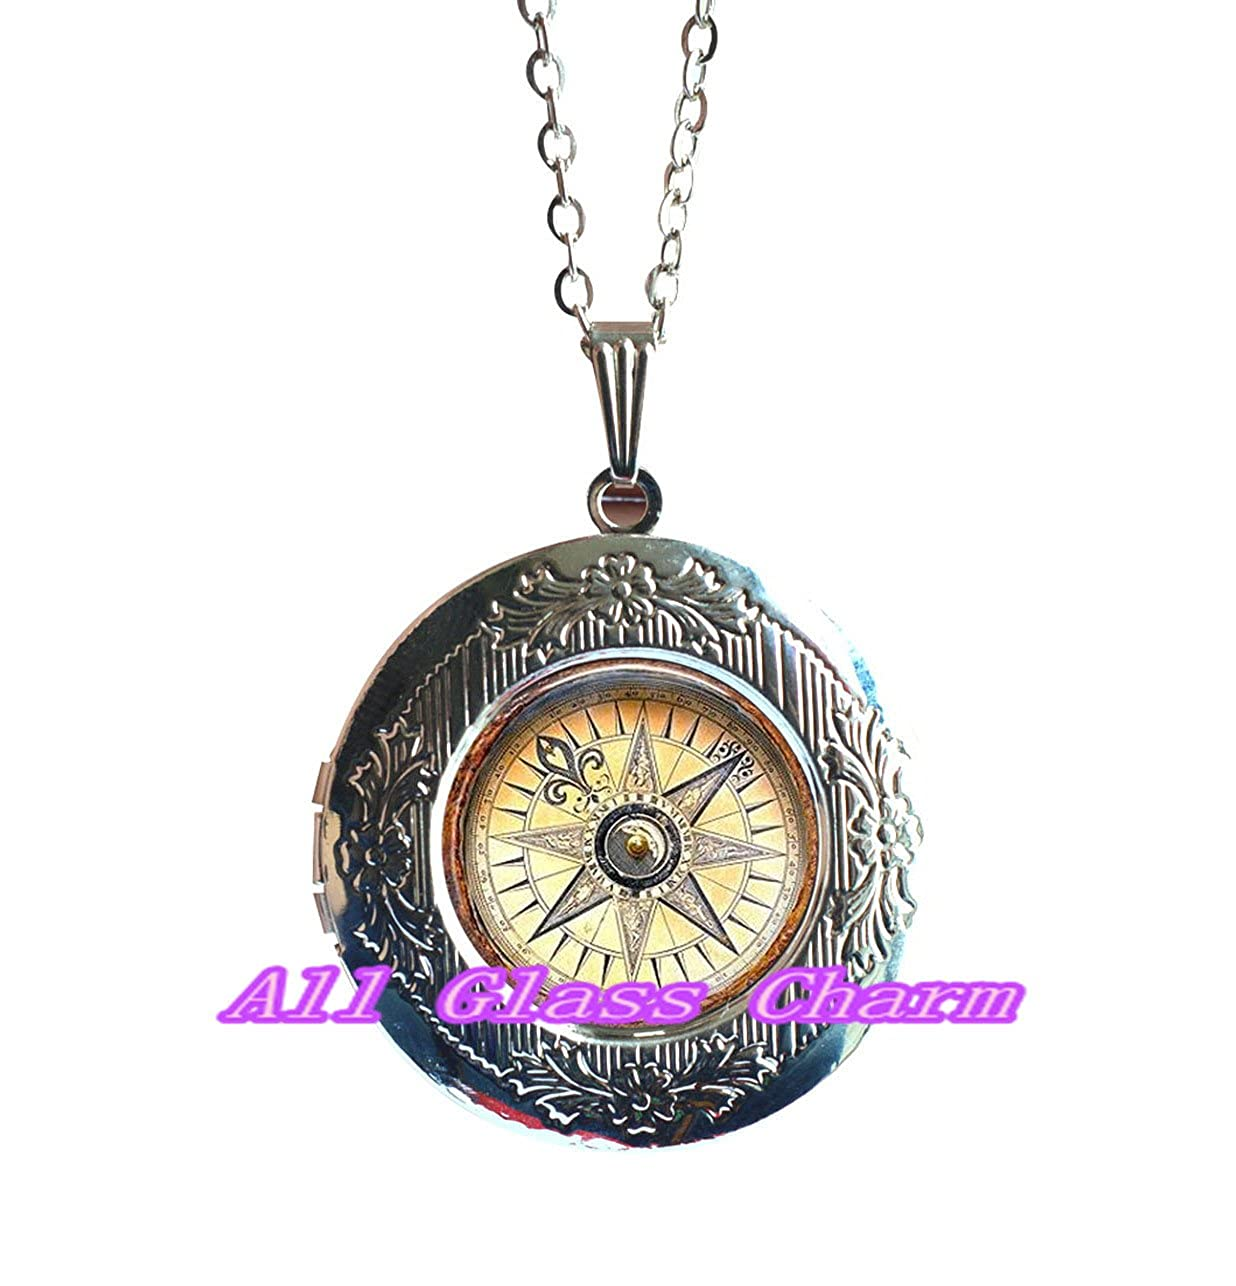 Jewelry for Traveler or Graduate Graduation Gift Bon Voyage Grad Gift Compass Locket Necklace,AS0128 Find Your Way Beautiful Locket Necklace,Compass Locket Pendant